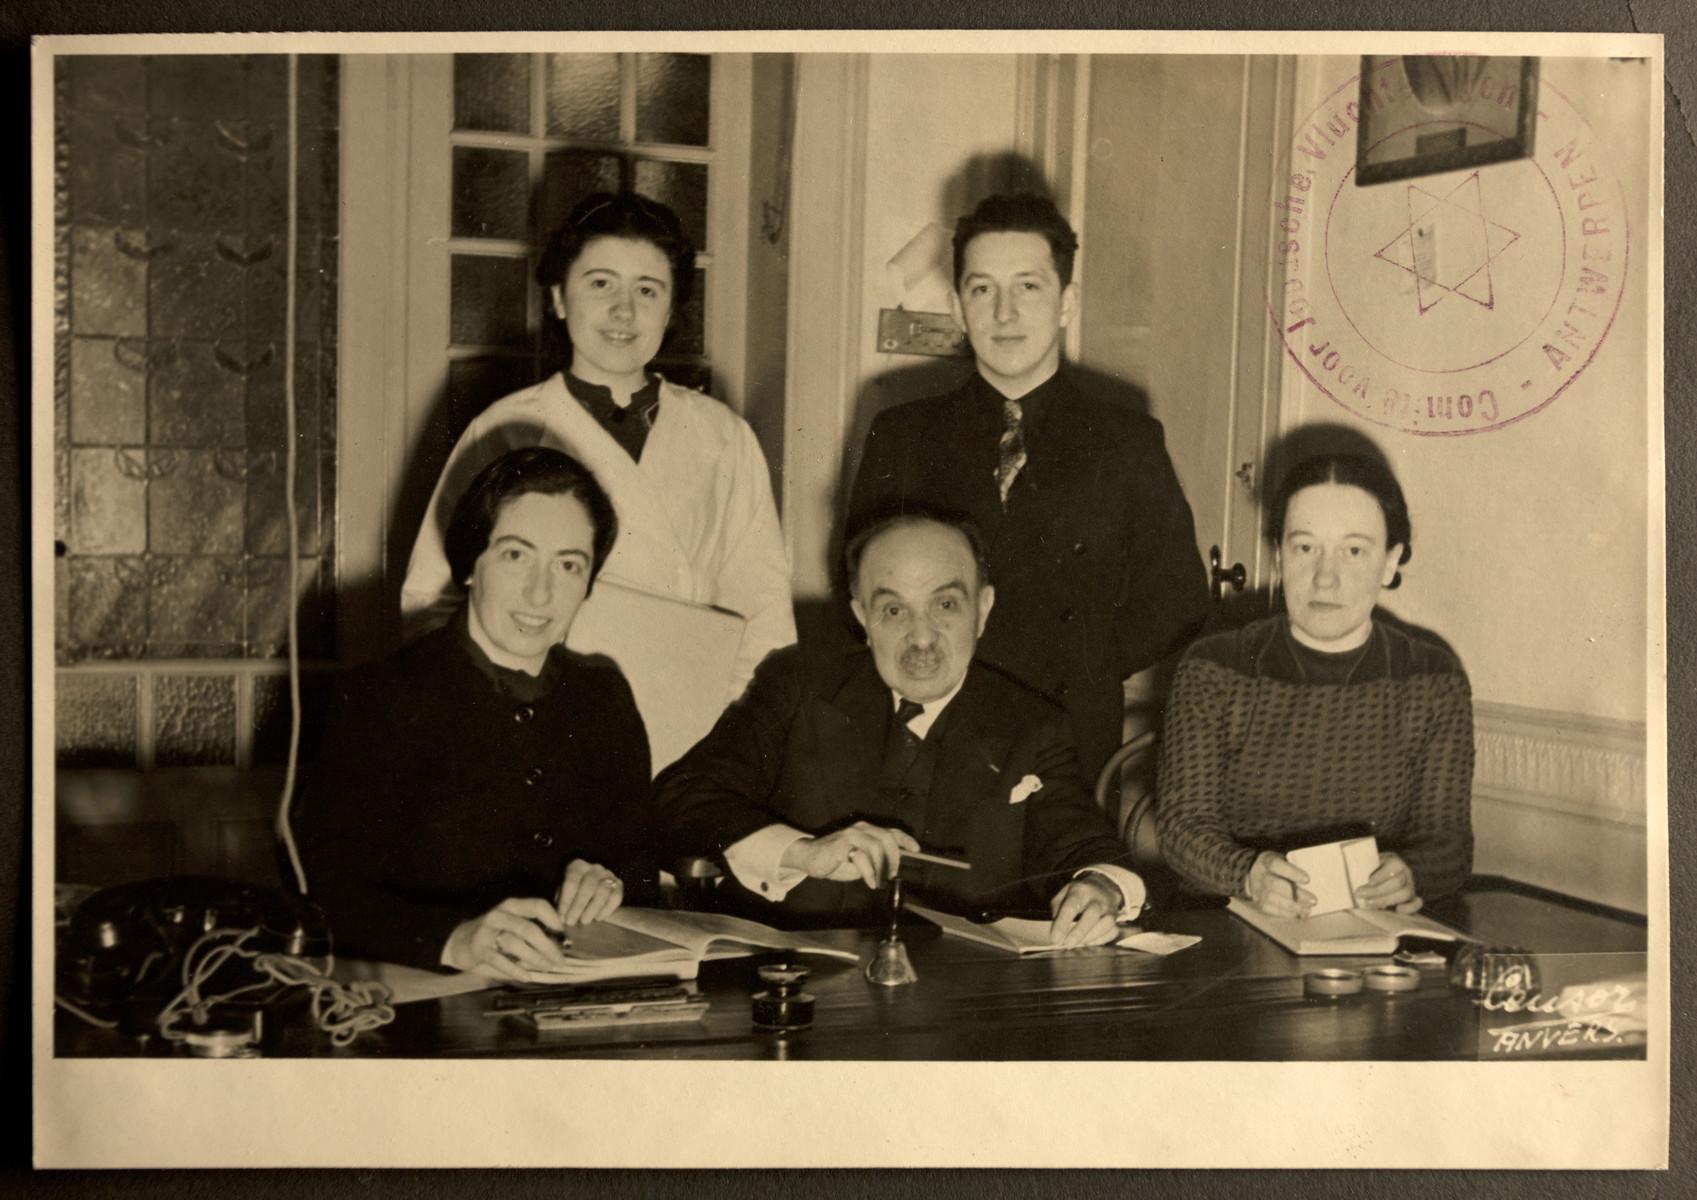 Group portrait of members of the Jewish Refugee Aid Committee of Antwerp